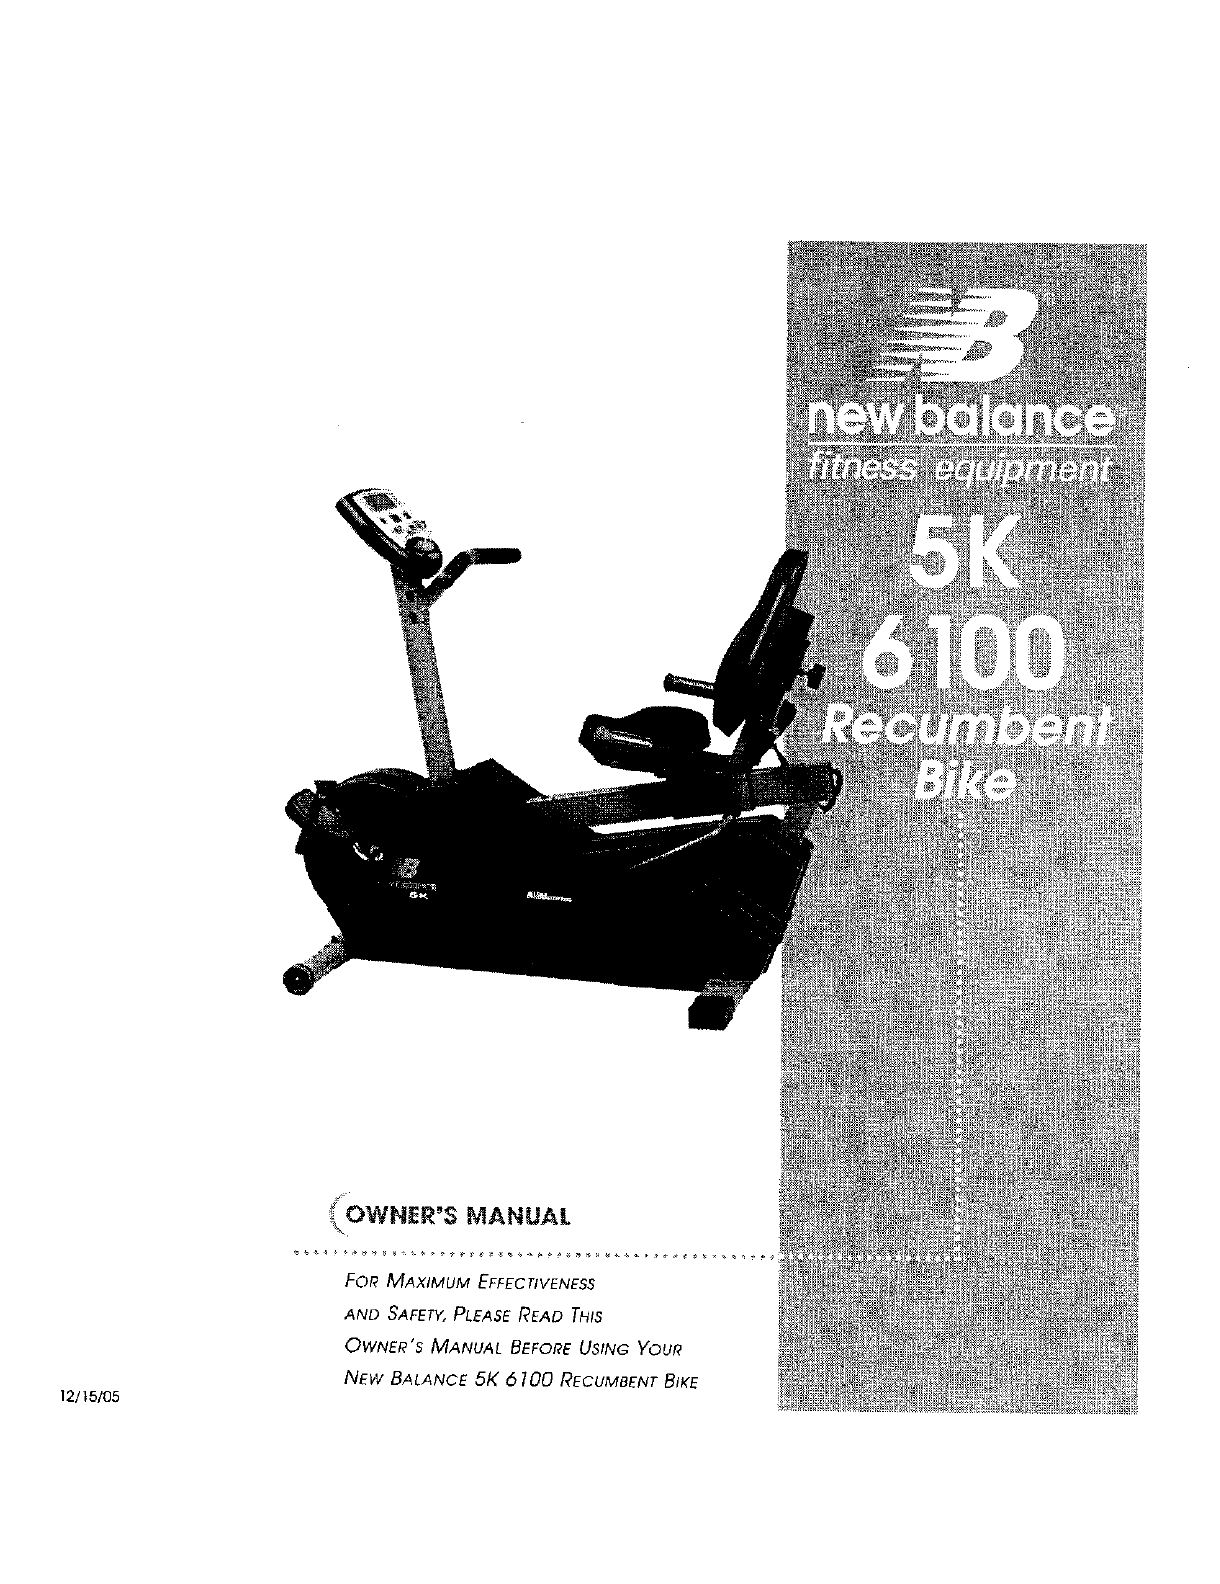 new balance 6200 recumbent bike